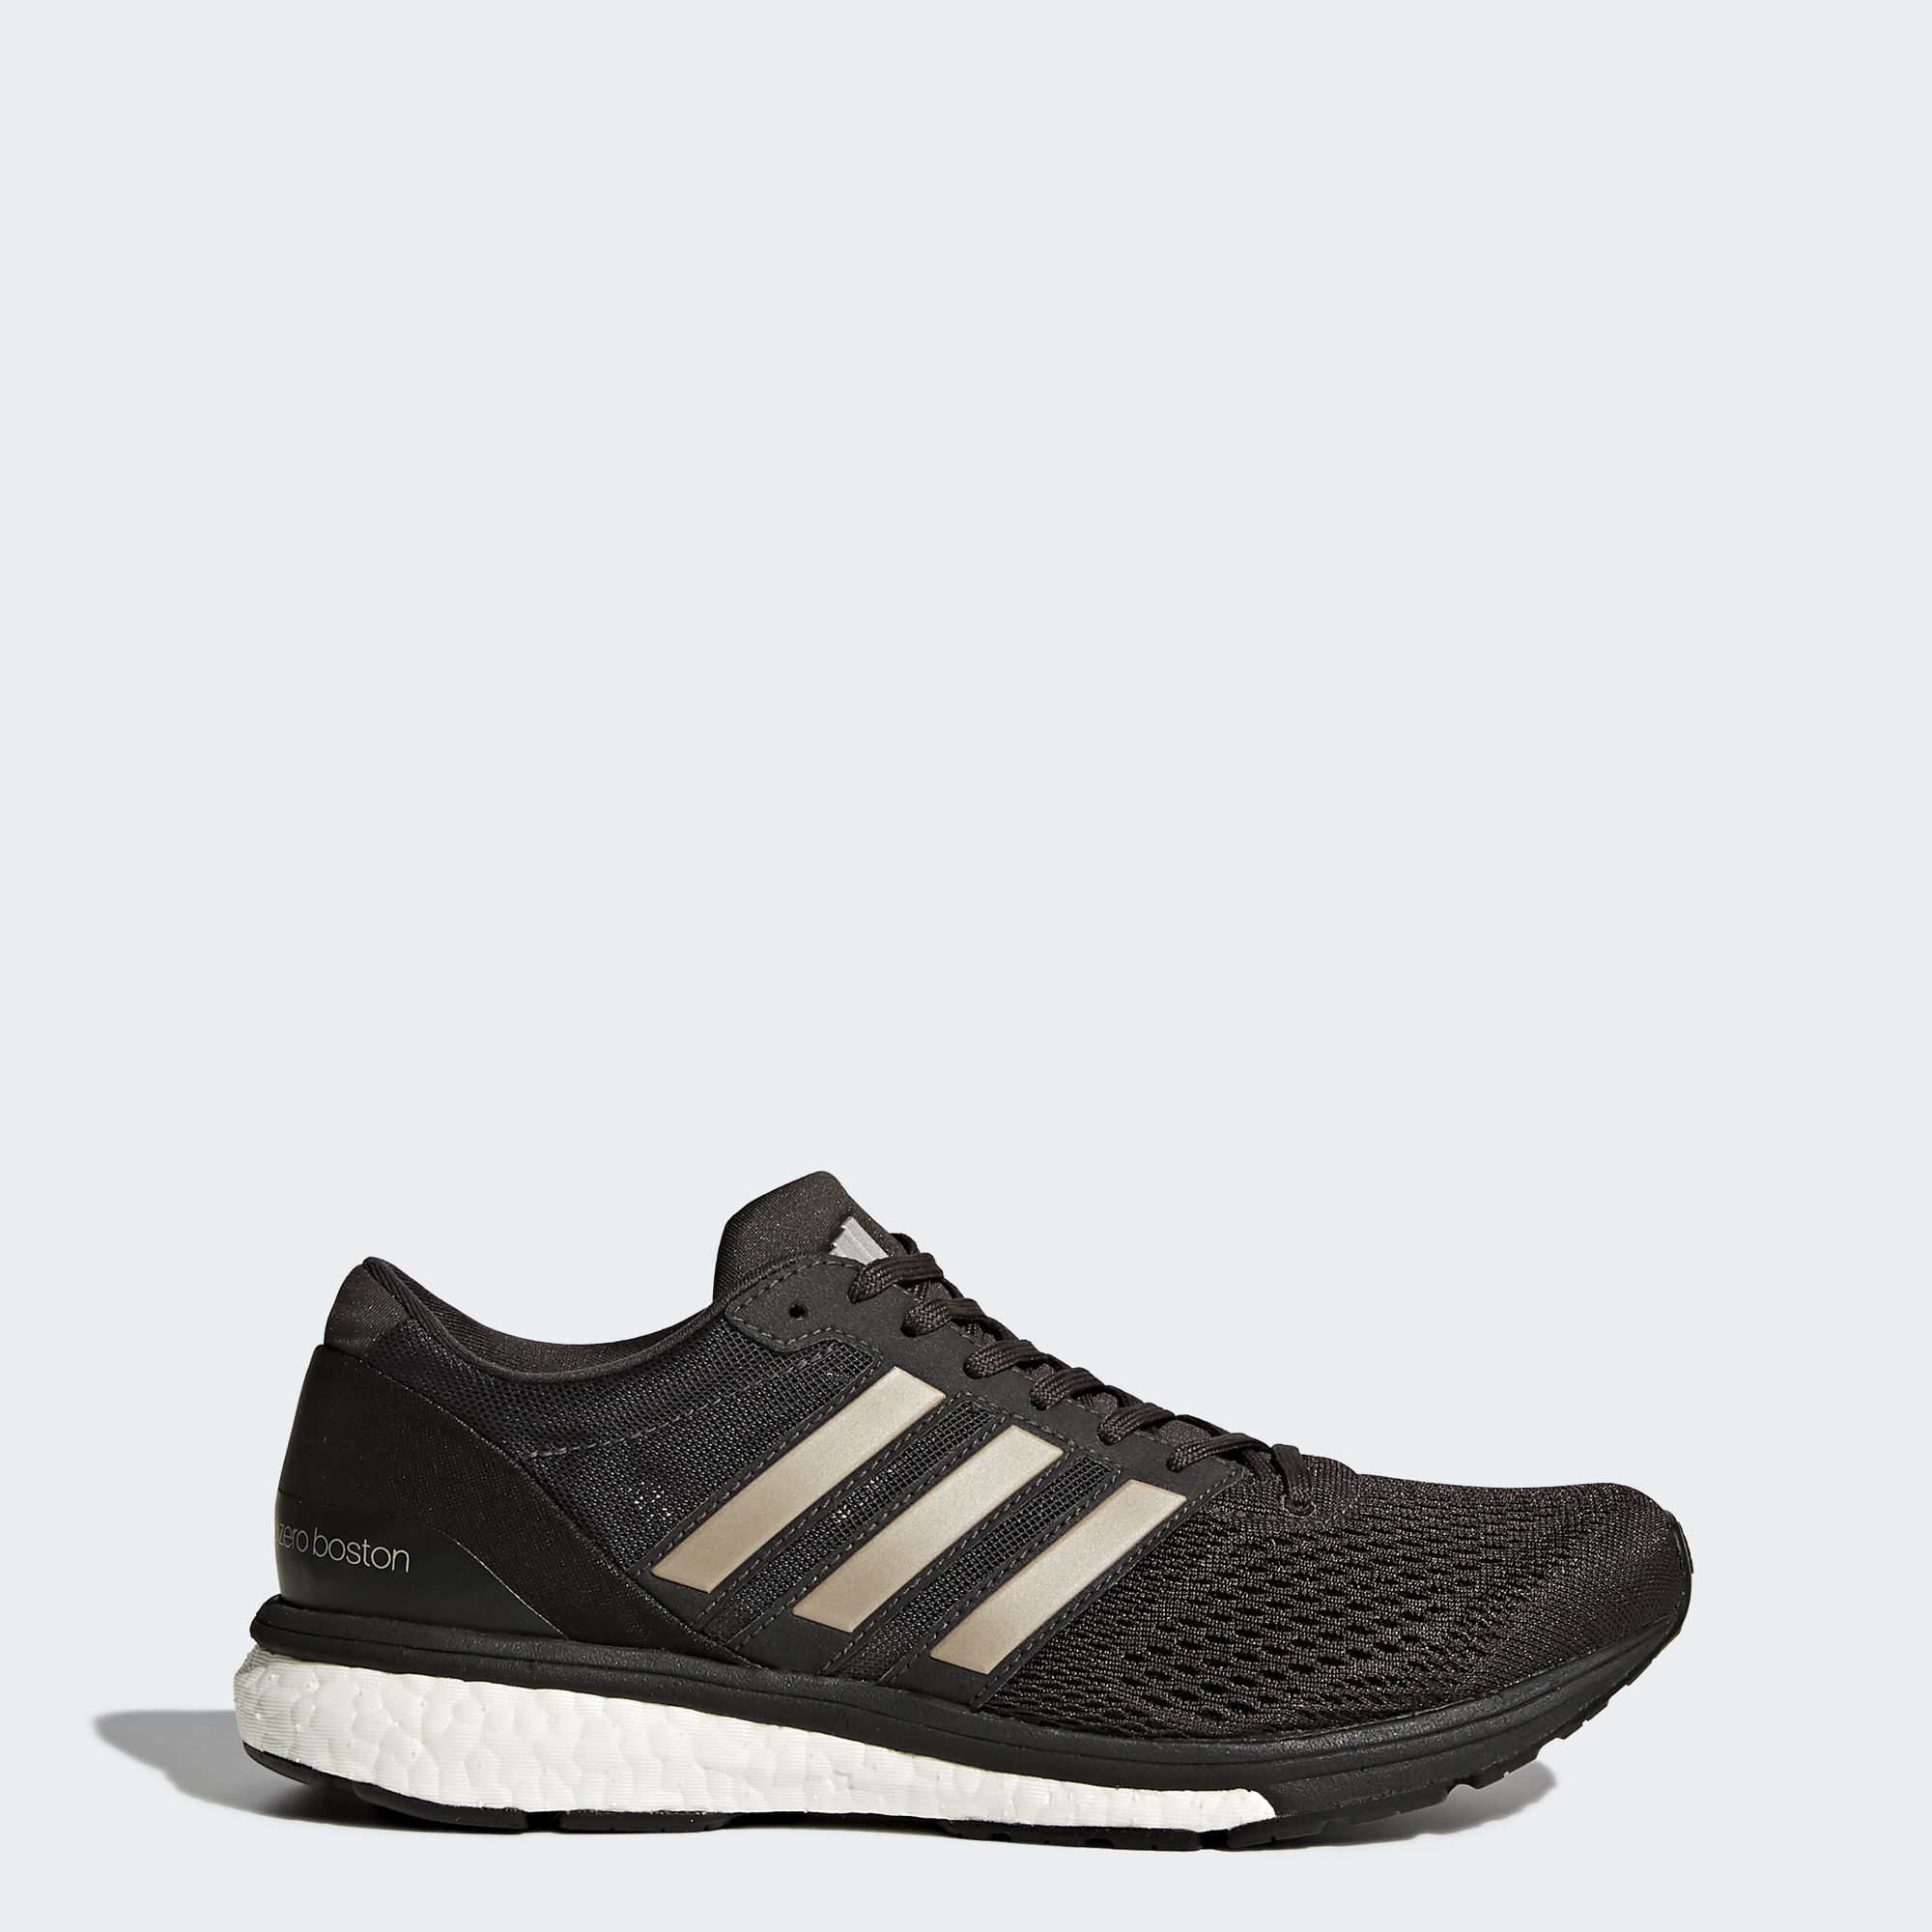 adidas Adizero Boston 6 w in Schwarz